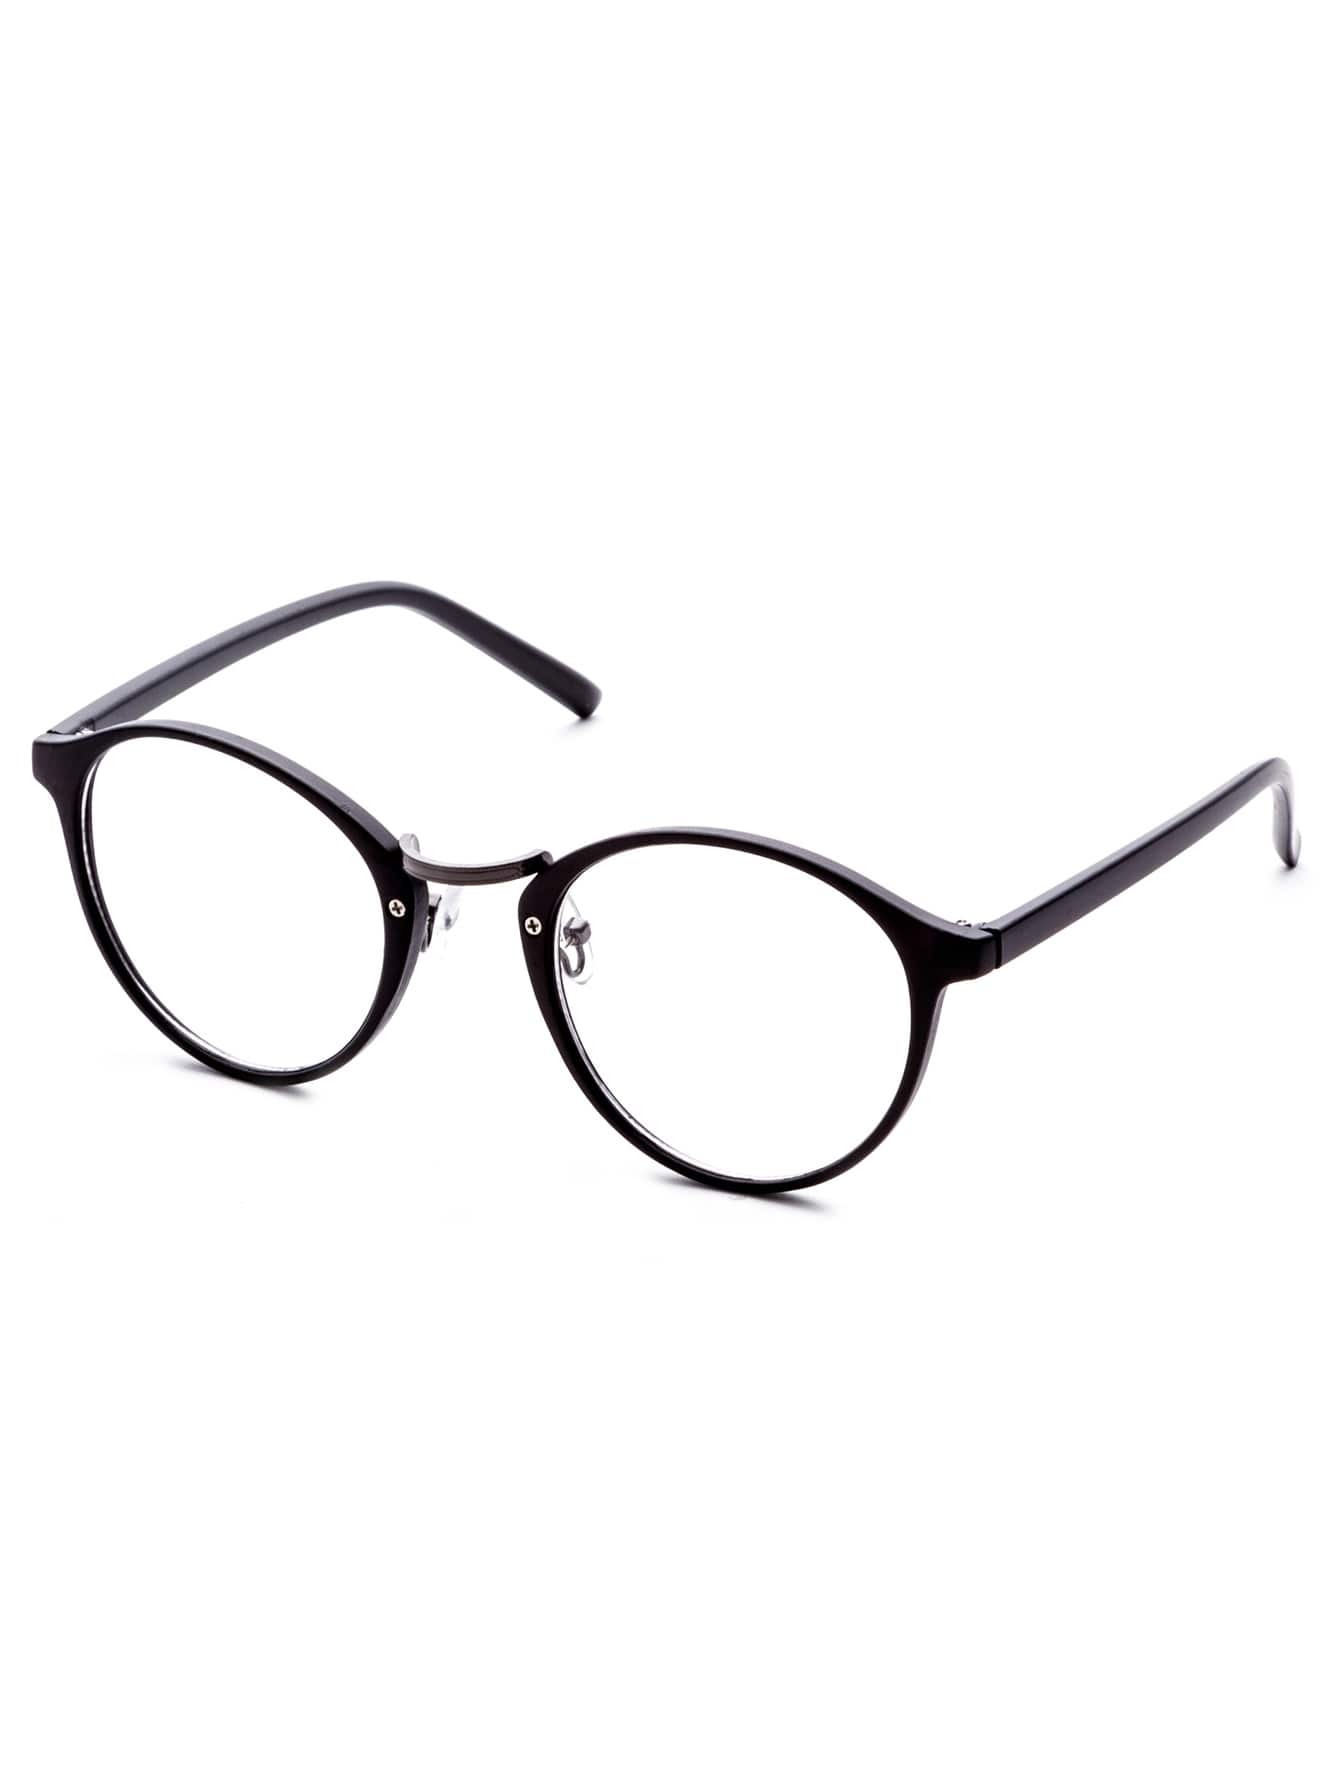 Black Frame Glasses Clear Lens : Black Frame Clear Lens Glasses